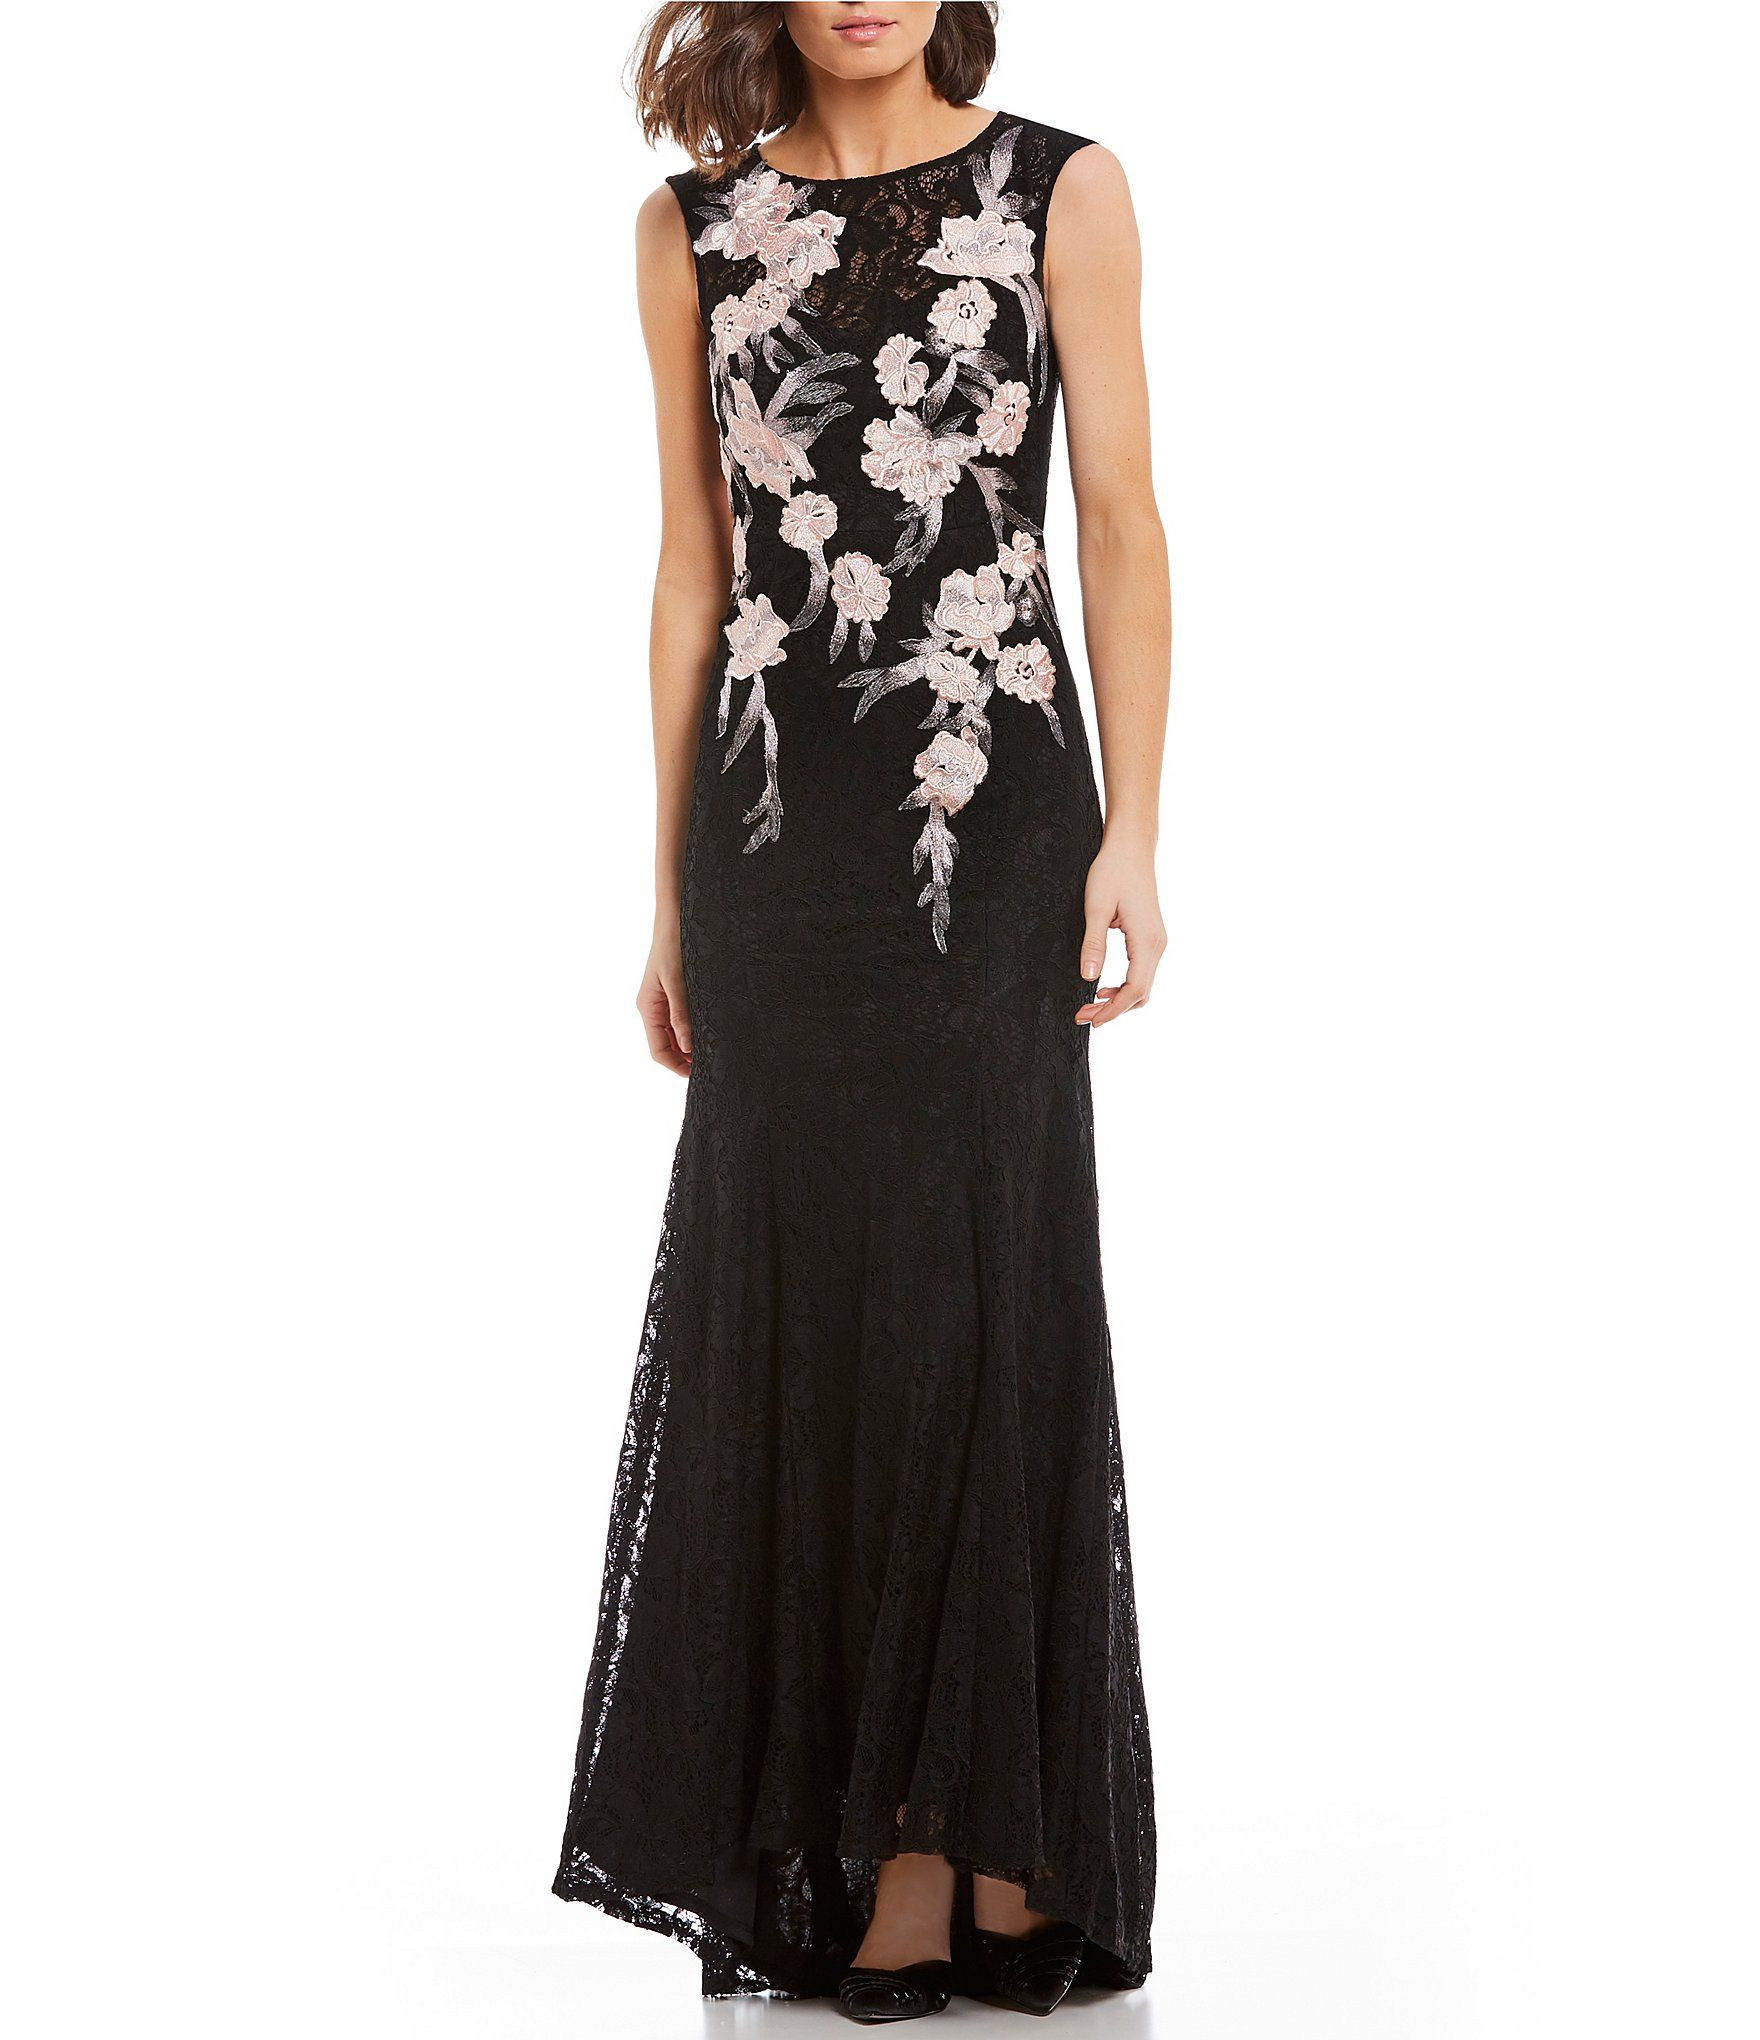 Decode 1.8 Embroidered Lace Gown | Decoding, Embroidered lace and ...